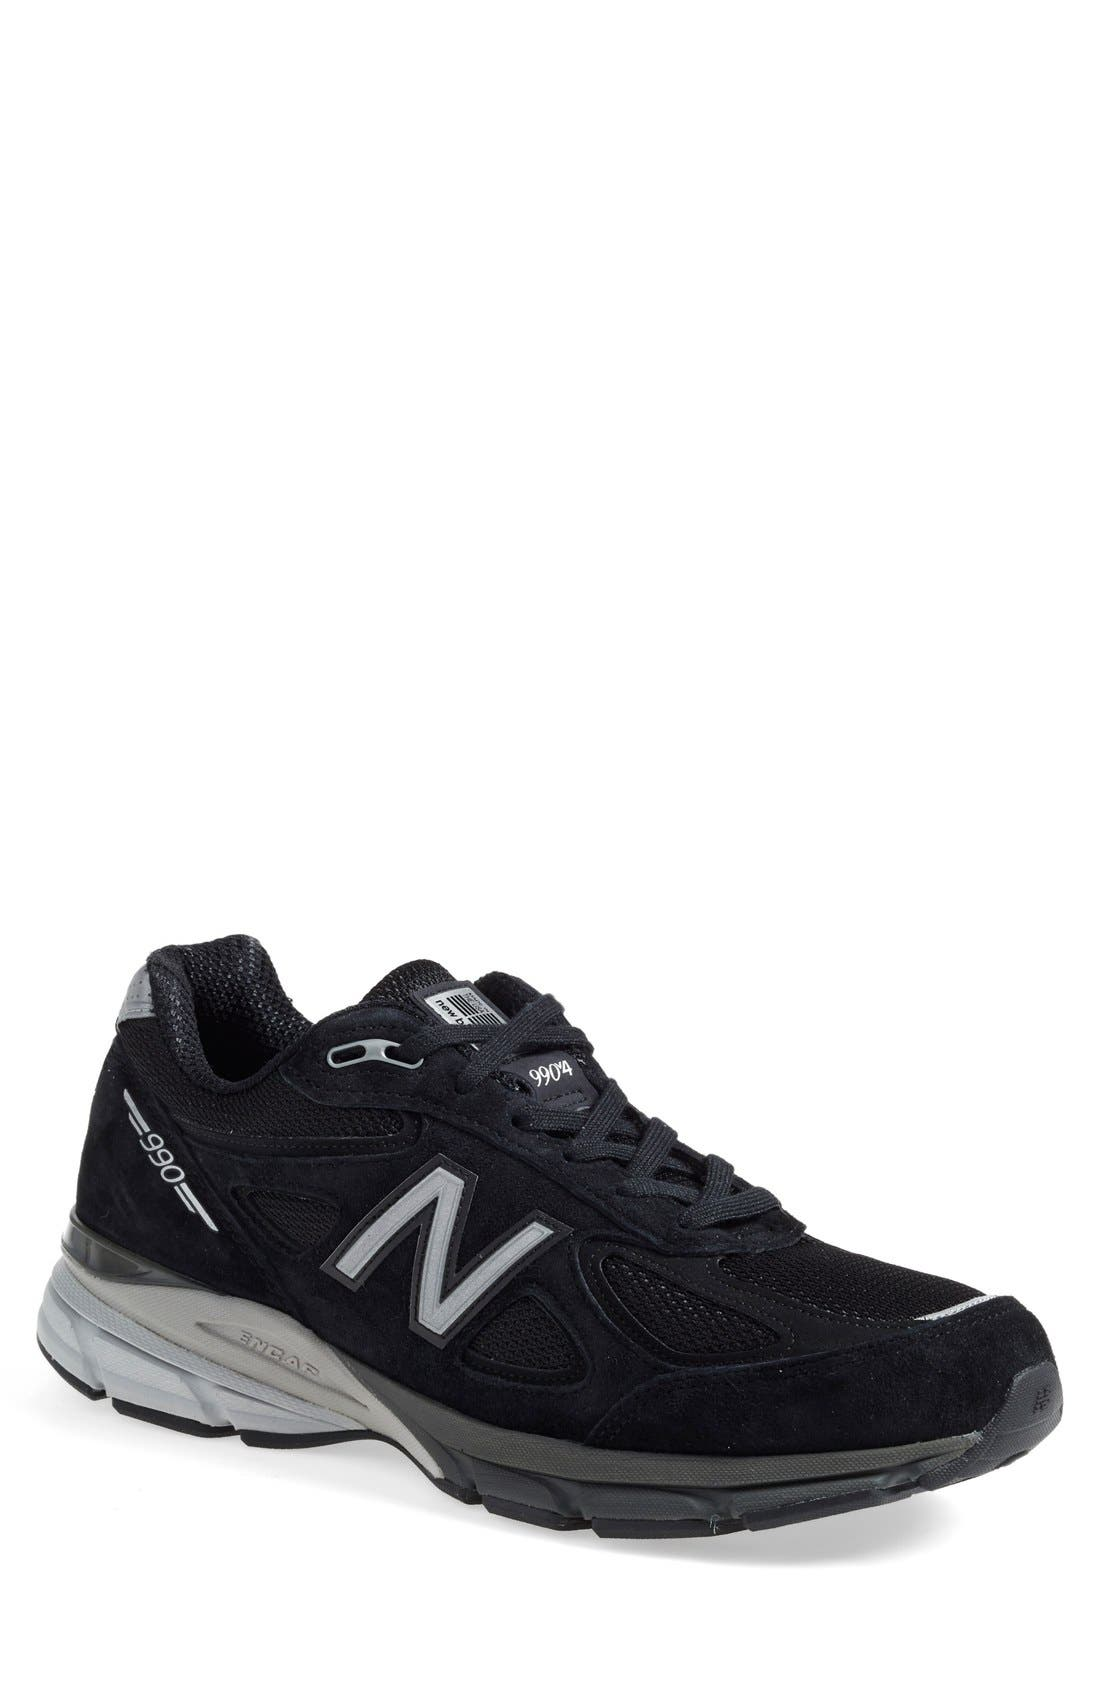 '990' Running Shoe,                             Main thumbnail 1, color,                             BLACK